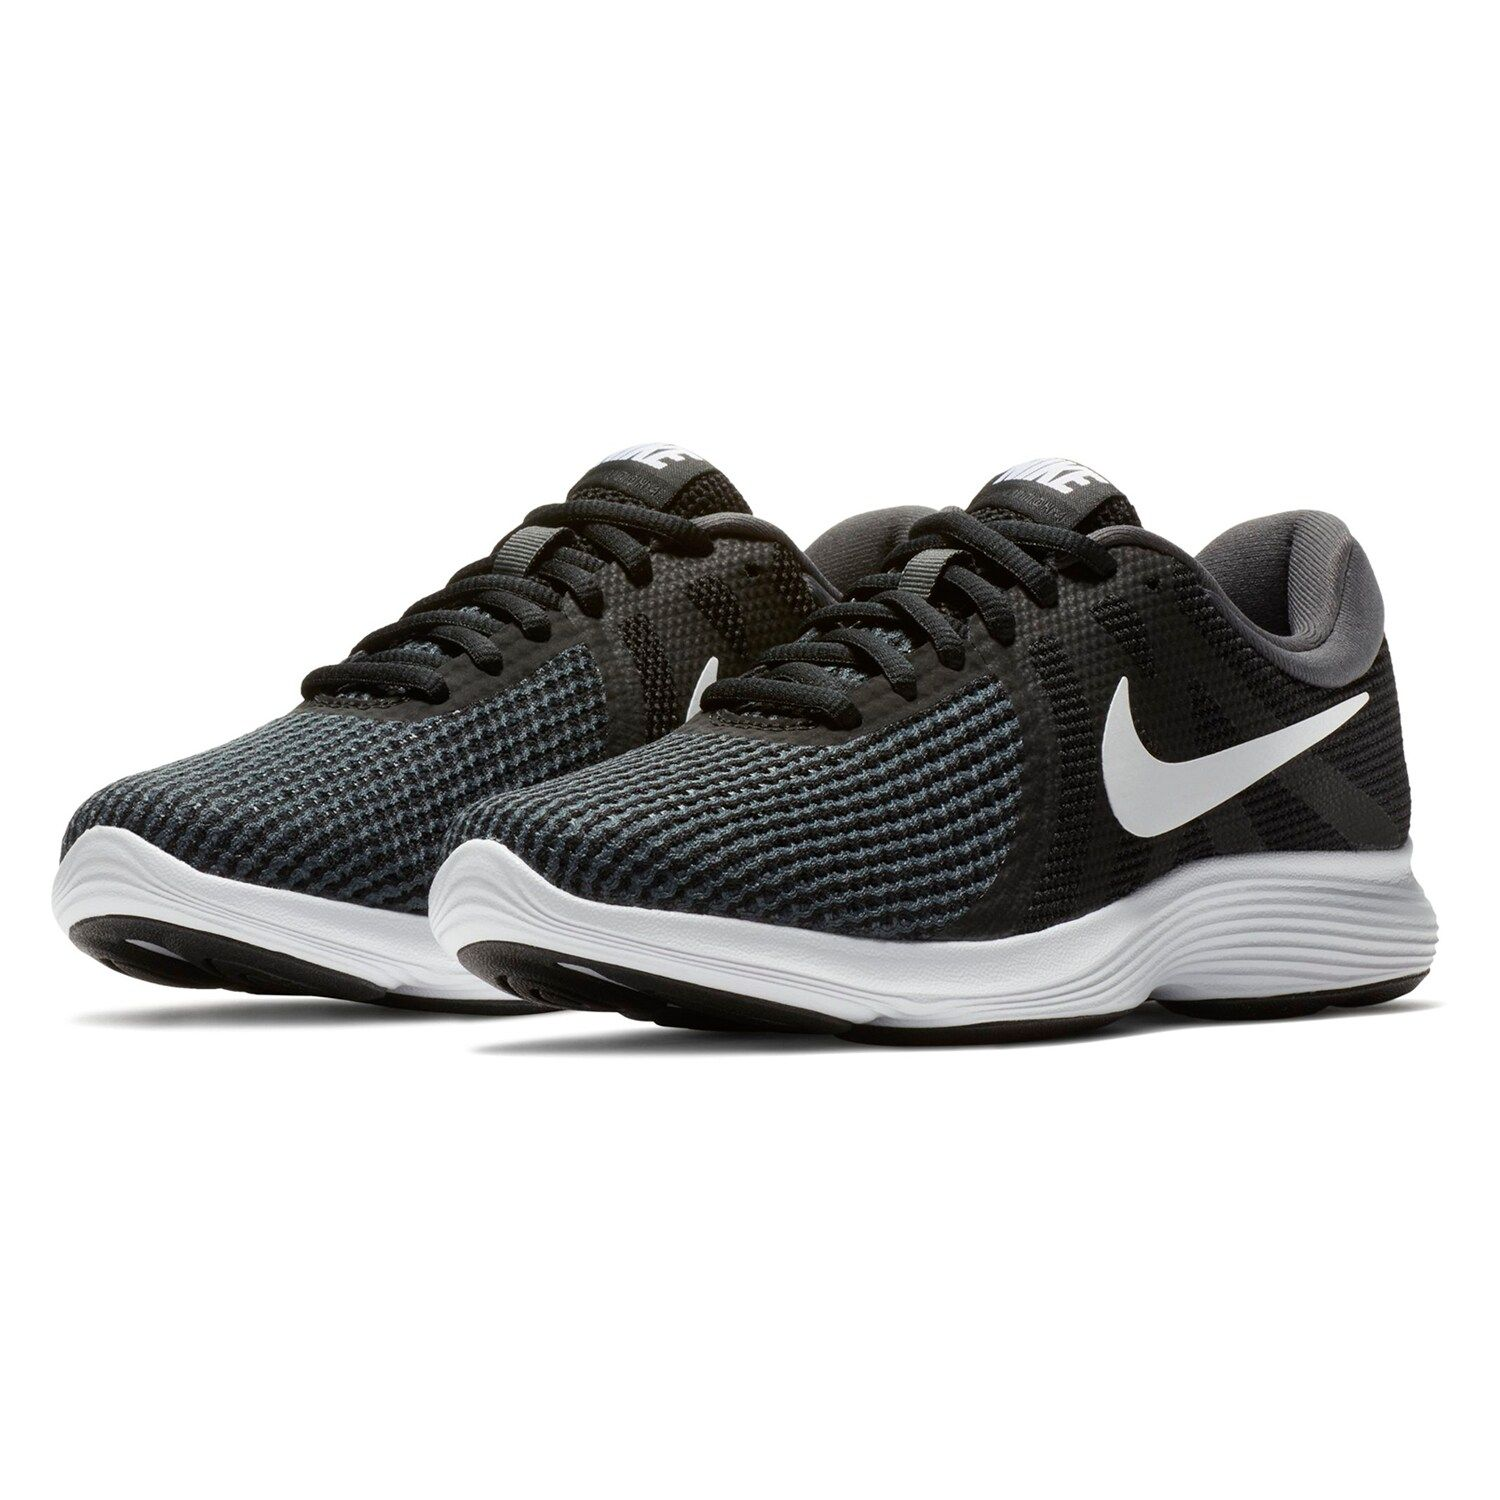 nike revolution 4 women's running shoes black